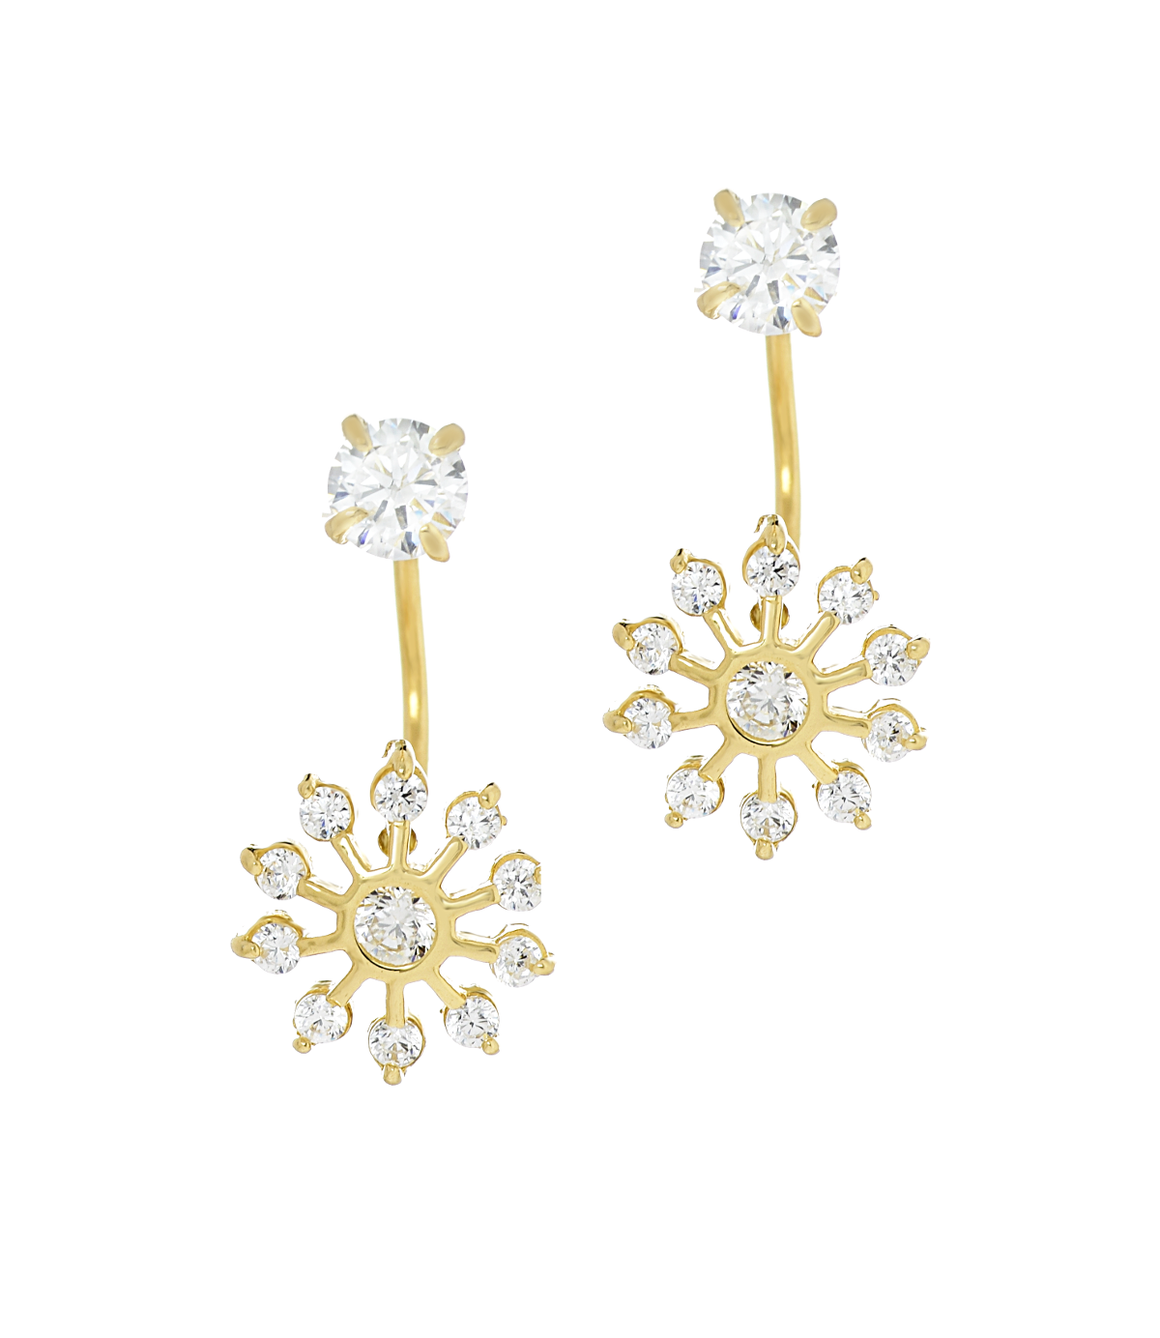 14K Yellow Gold CZ Sun Telephone Earrings - Anny Gabriella NY